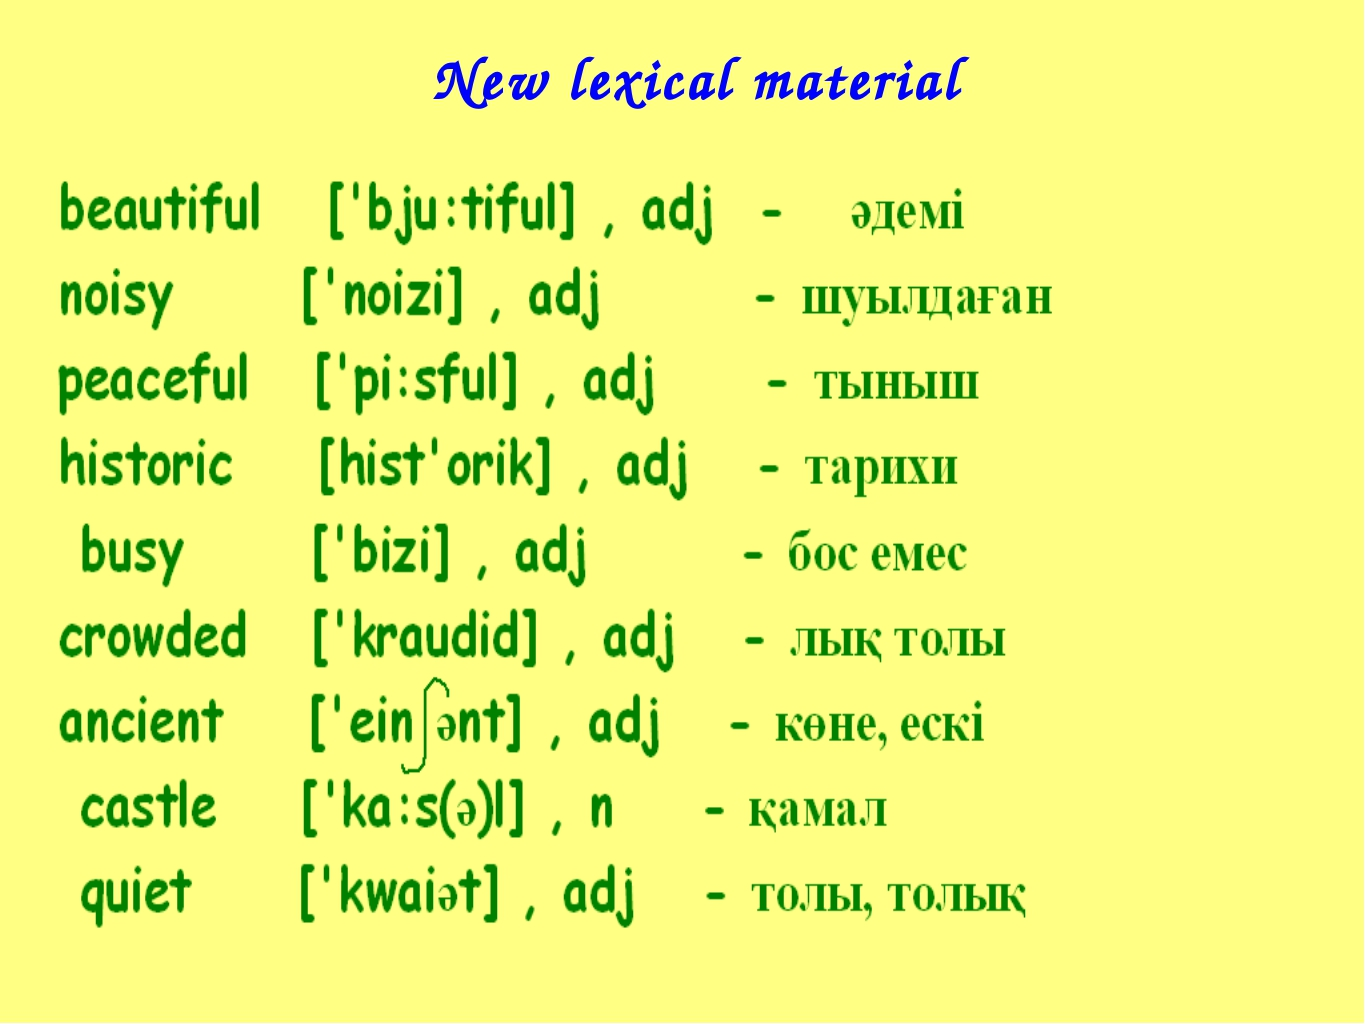 New lexical material